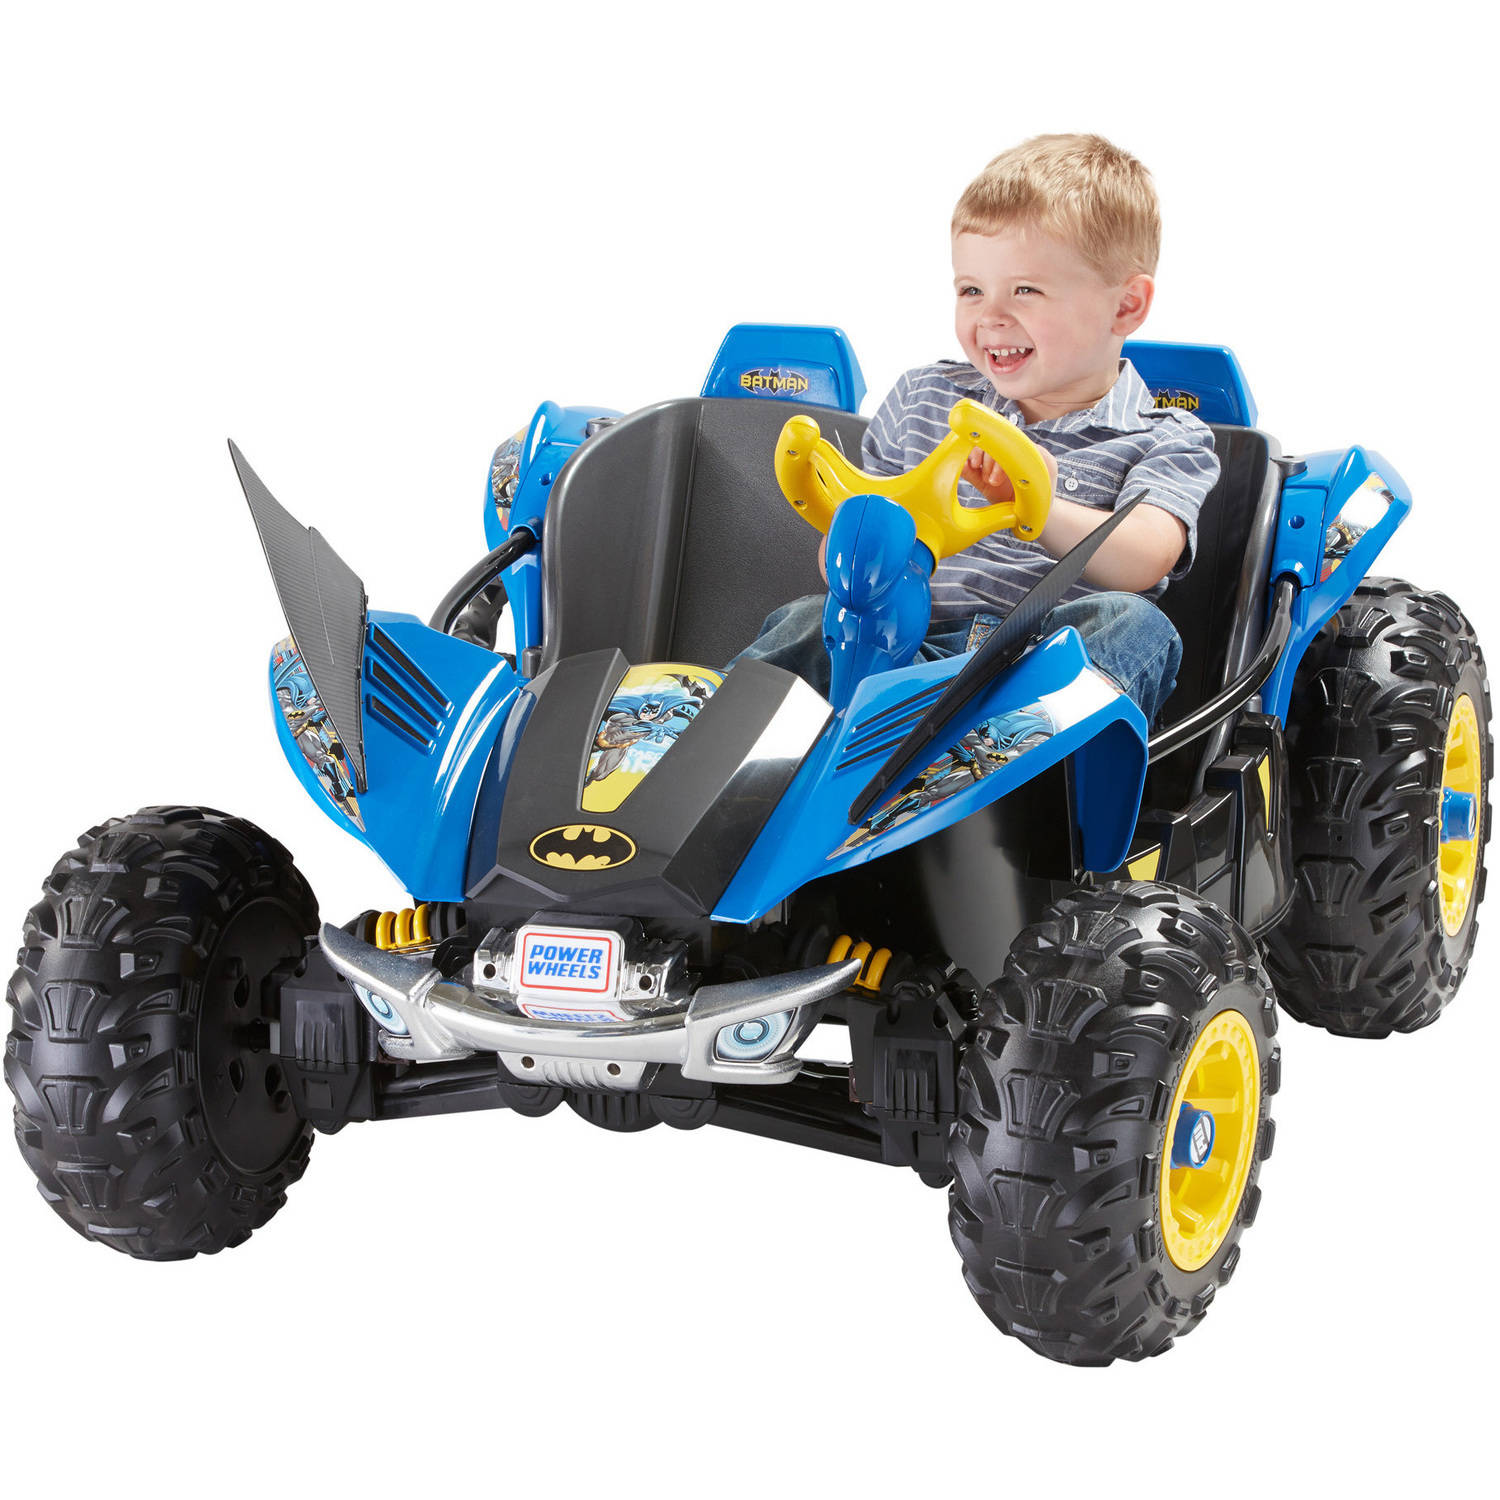 Power Wheels Batman Dune Racer Battery-Powered Ride-On